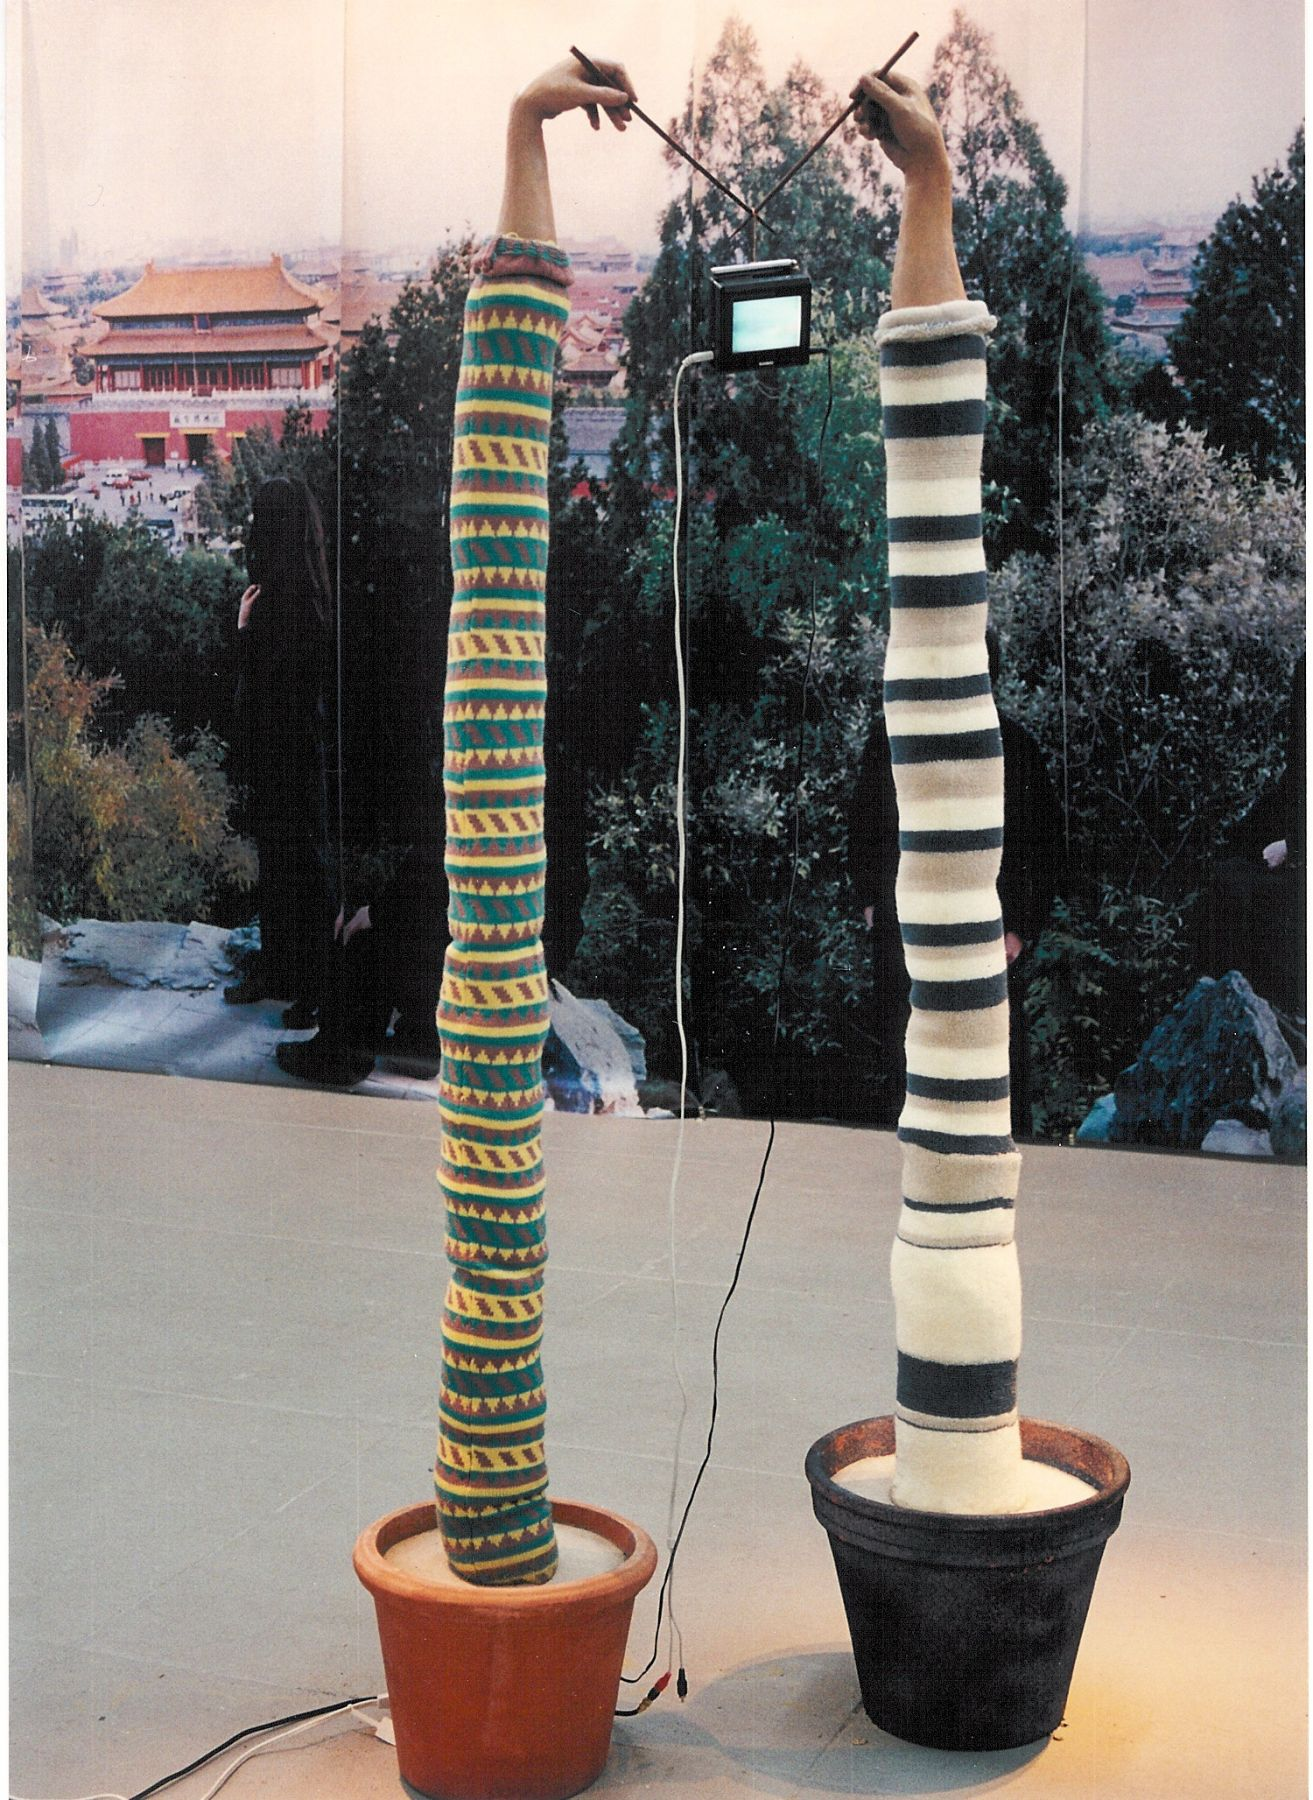 United Hands (A) 联手(甲), 2002